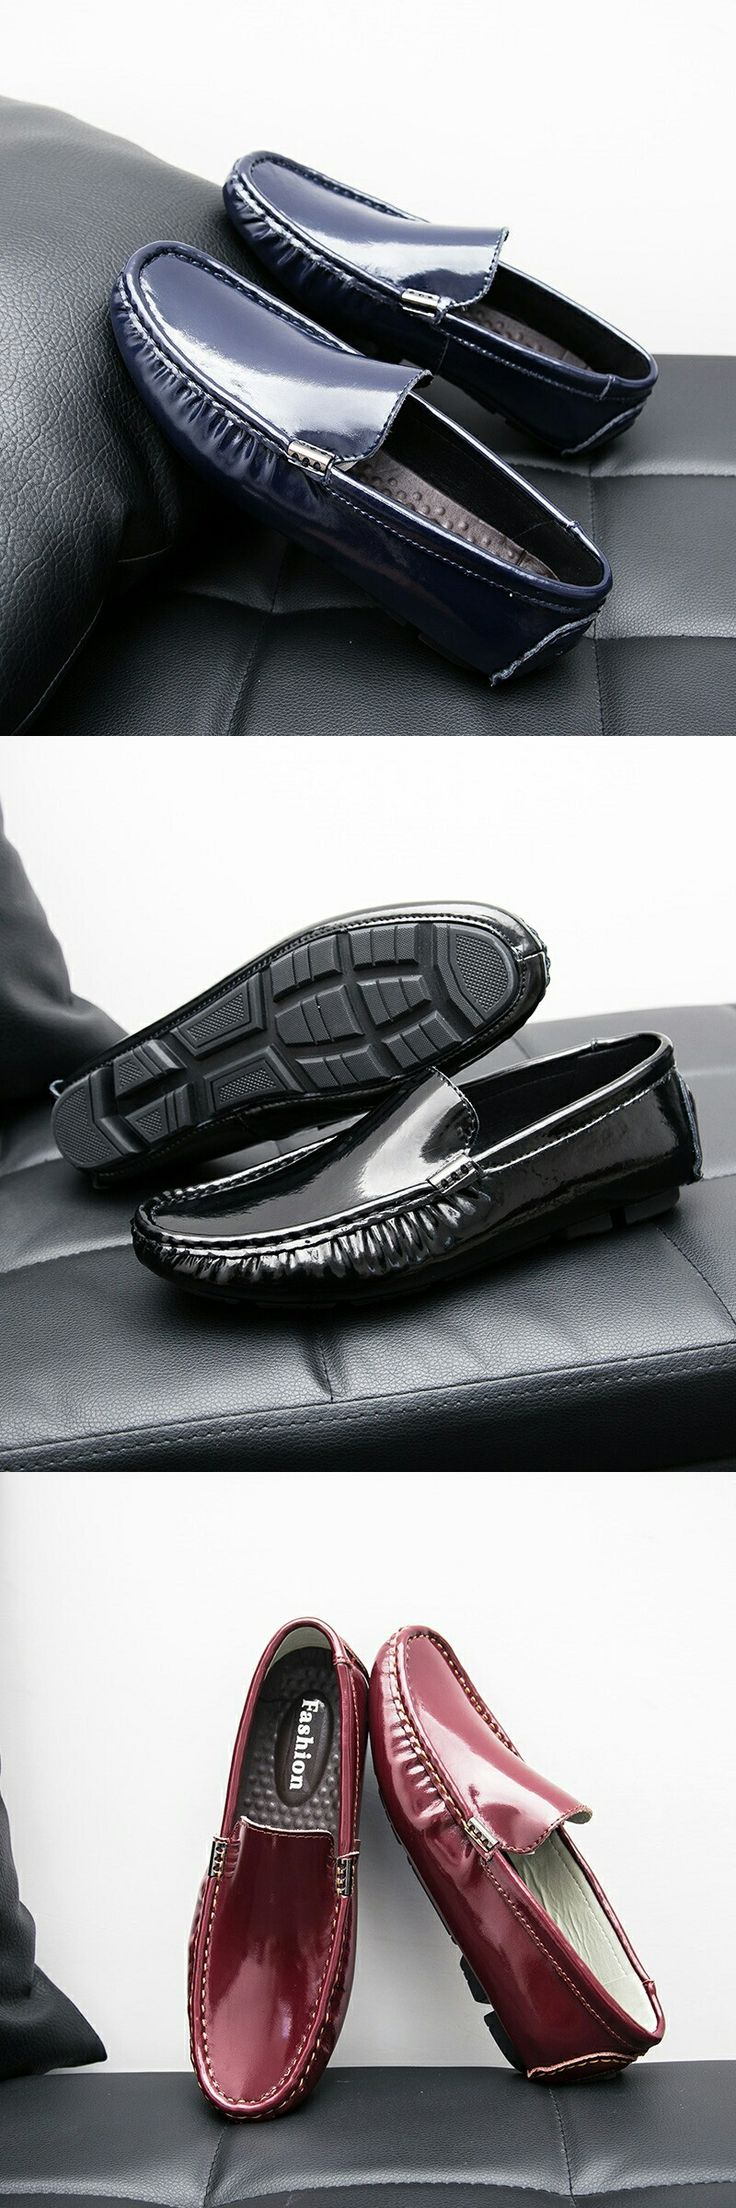 US $25.48 <Click to buy> Prelesty Simple Men's Shoes Loafers Patent Leather Casual Shoes Breathable Slip On Lighweight Zapatillas Hombre Size 45 46 47